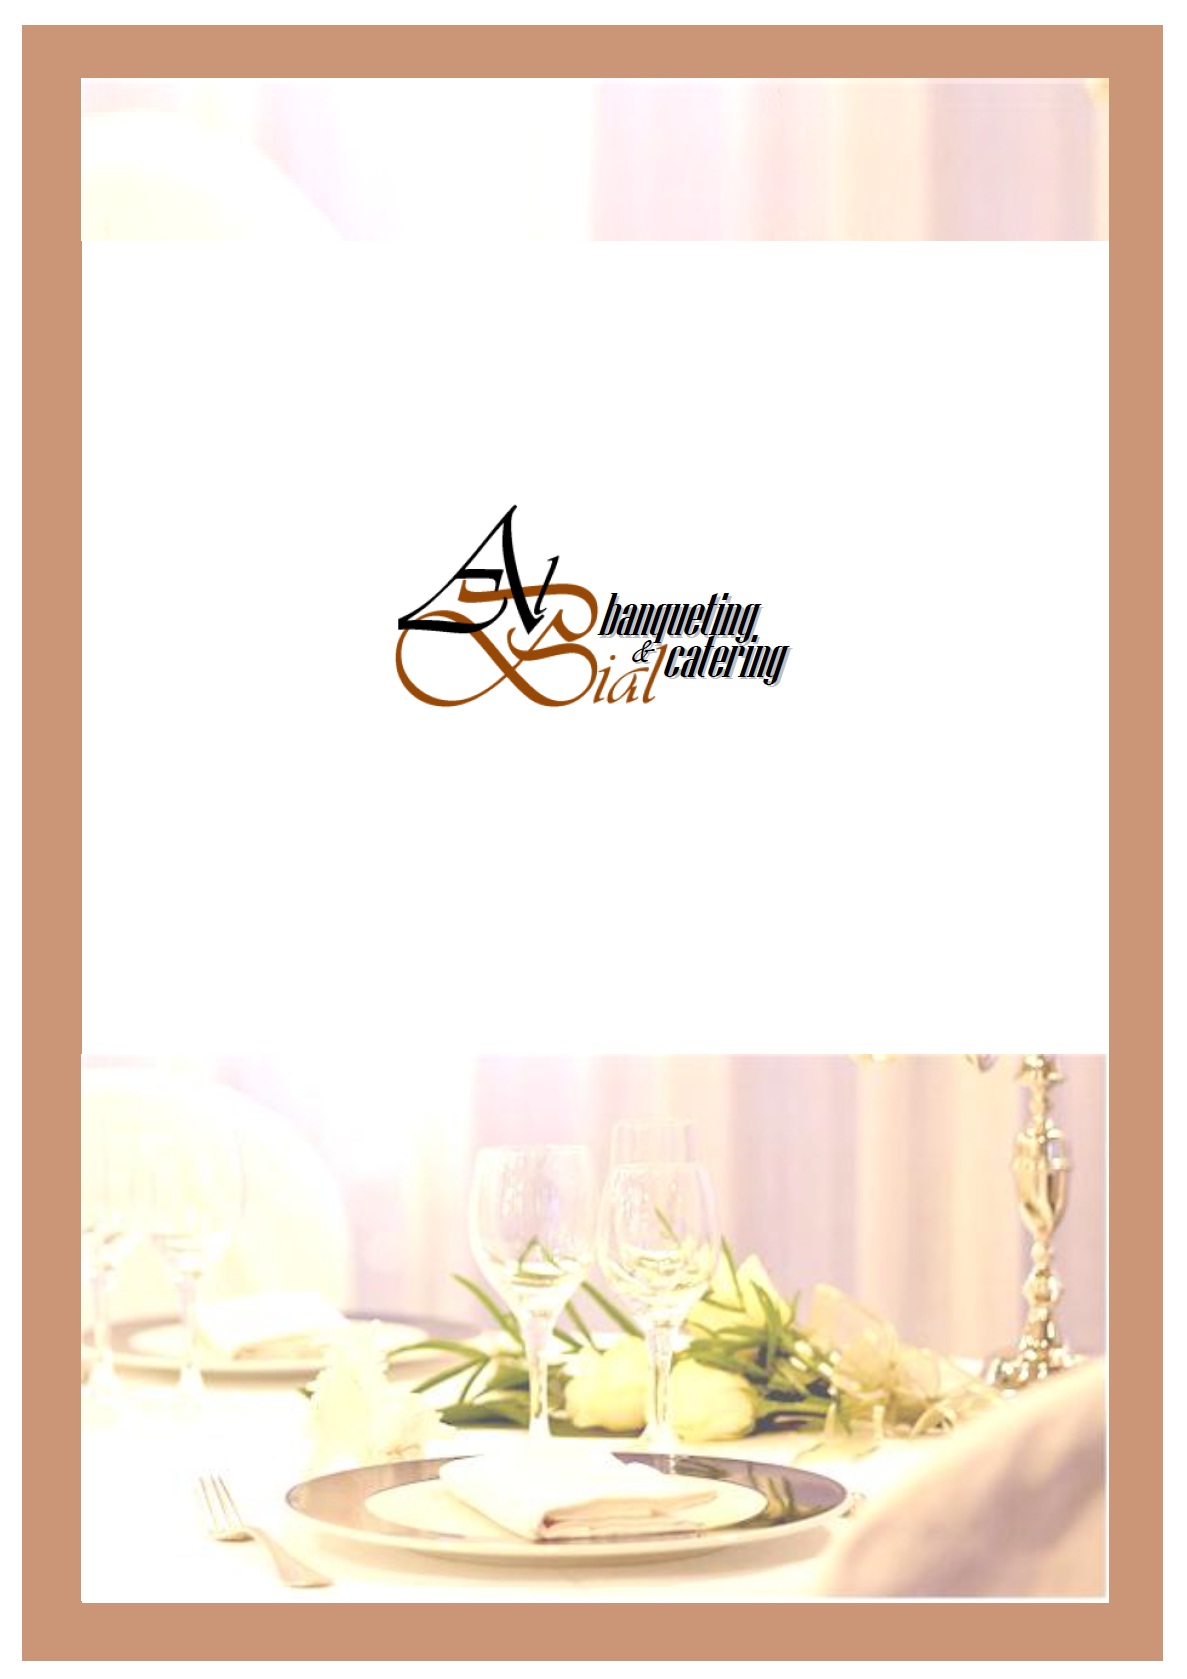 Al Bial Banqueting&Catering